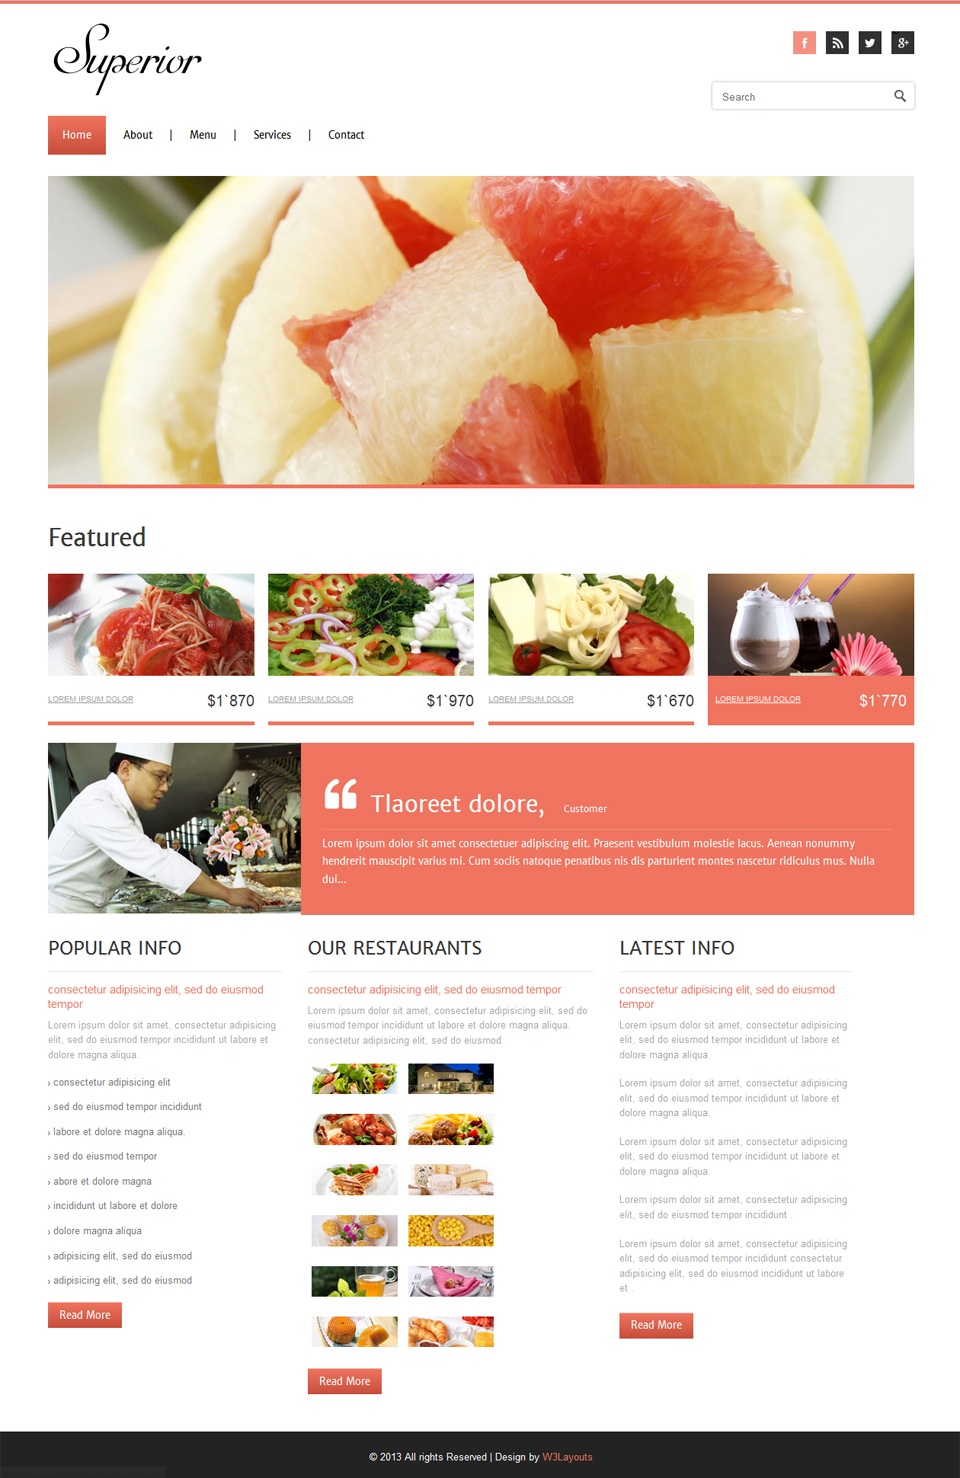 Free Superior Restaurant HTML5 Website Template